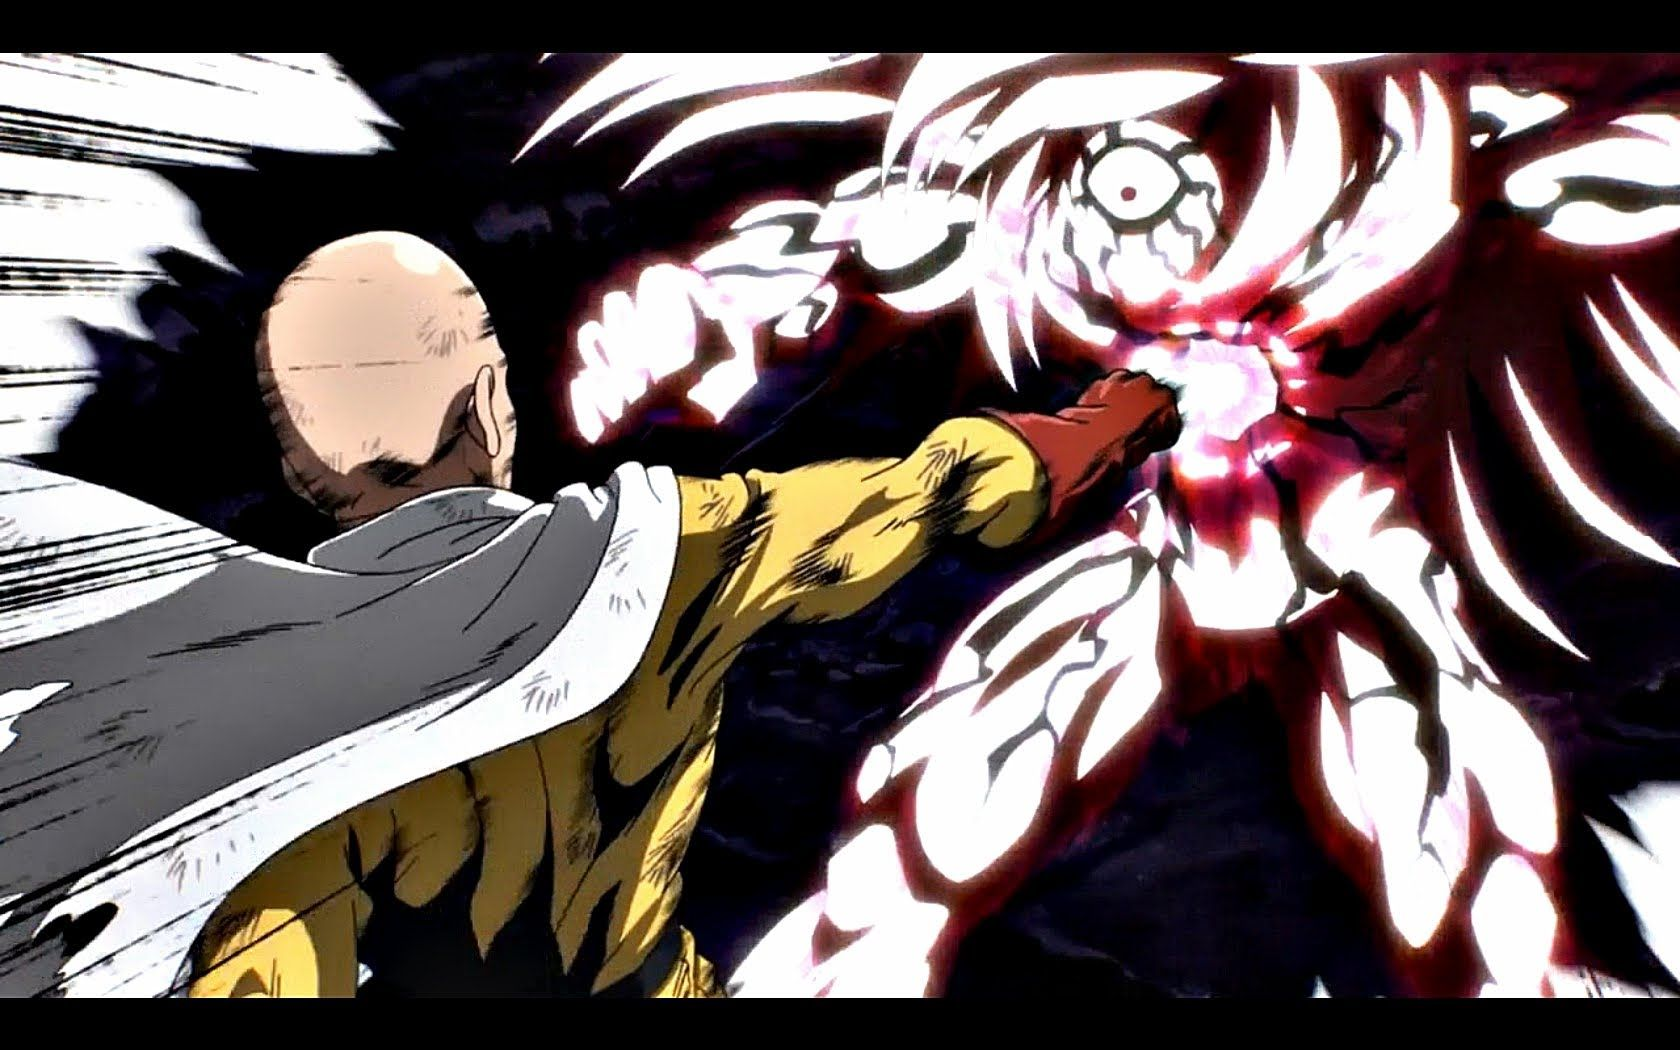 One punch man ワンパンマン episode 12 review saitama vs lord boros finale